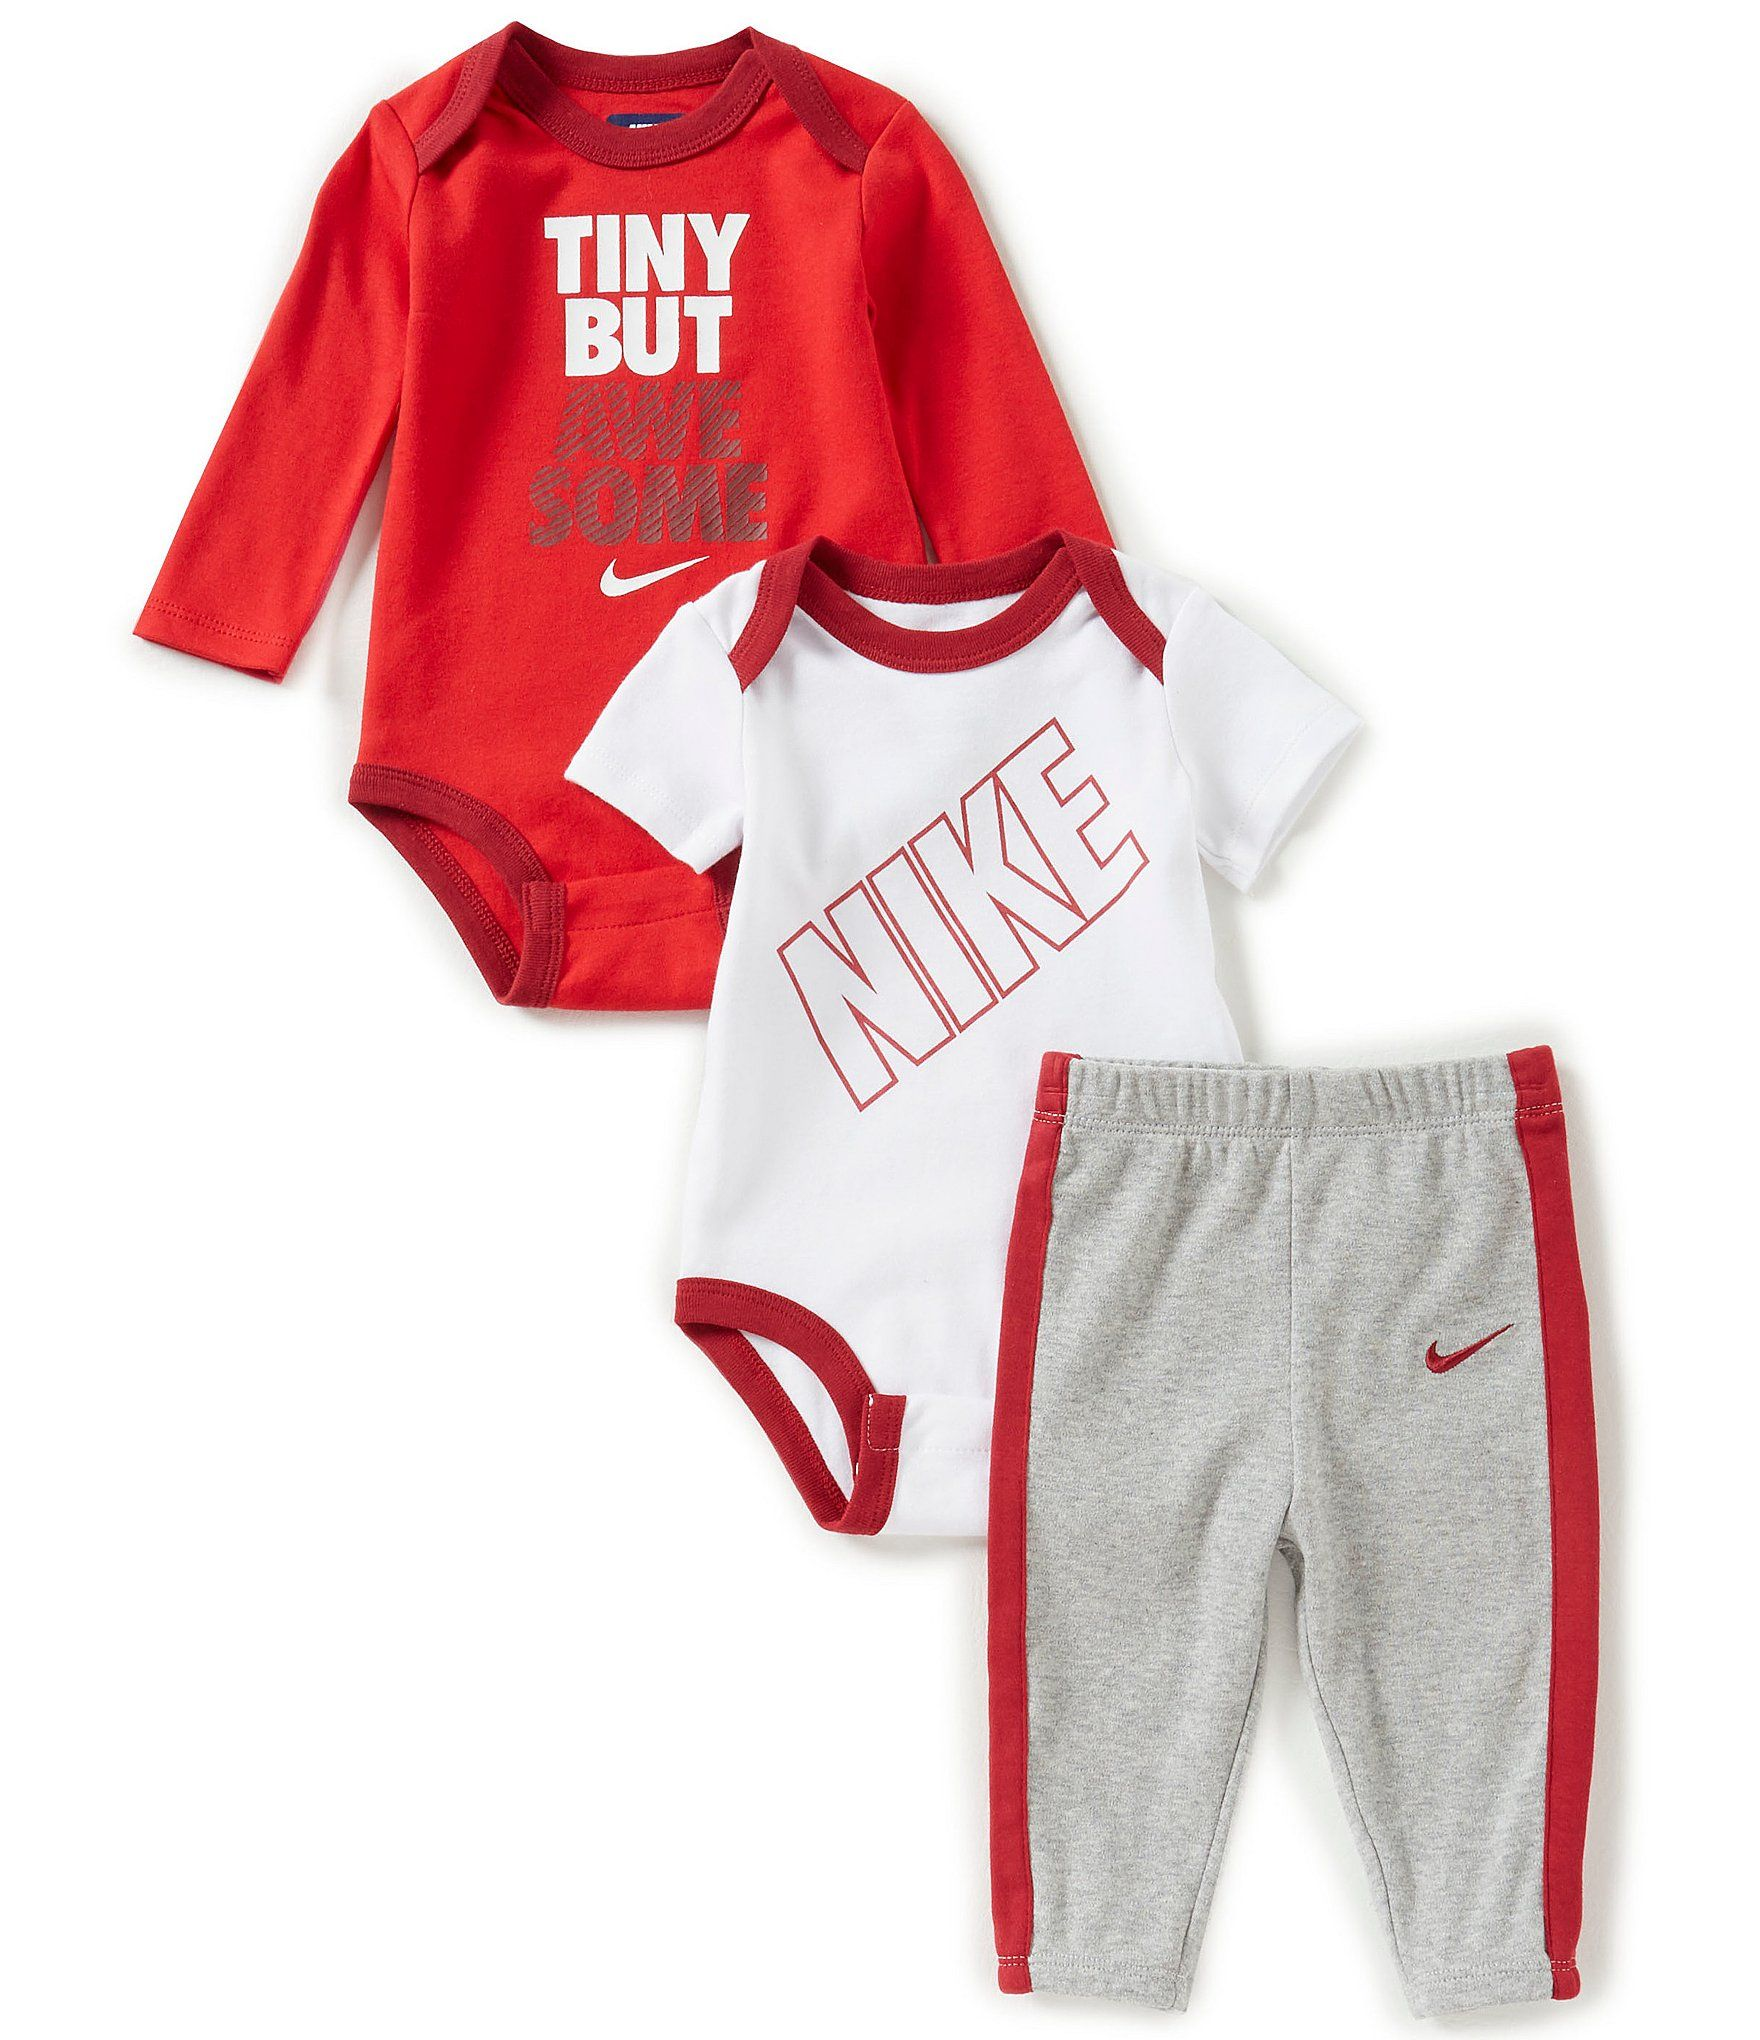 7ed272645 Shop for Nike Baby Boys Newborn-12 Months Long-Sleeve Bodysuit, Short-Sleeve  Bodysuit & Pant Set at Dillards.com. Visit Dillards.com to find clothing,  ...